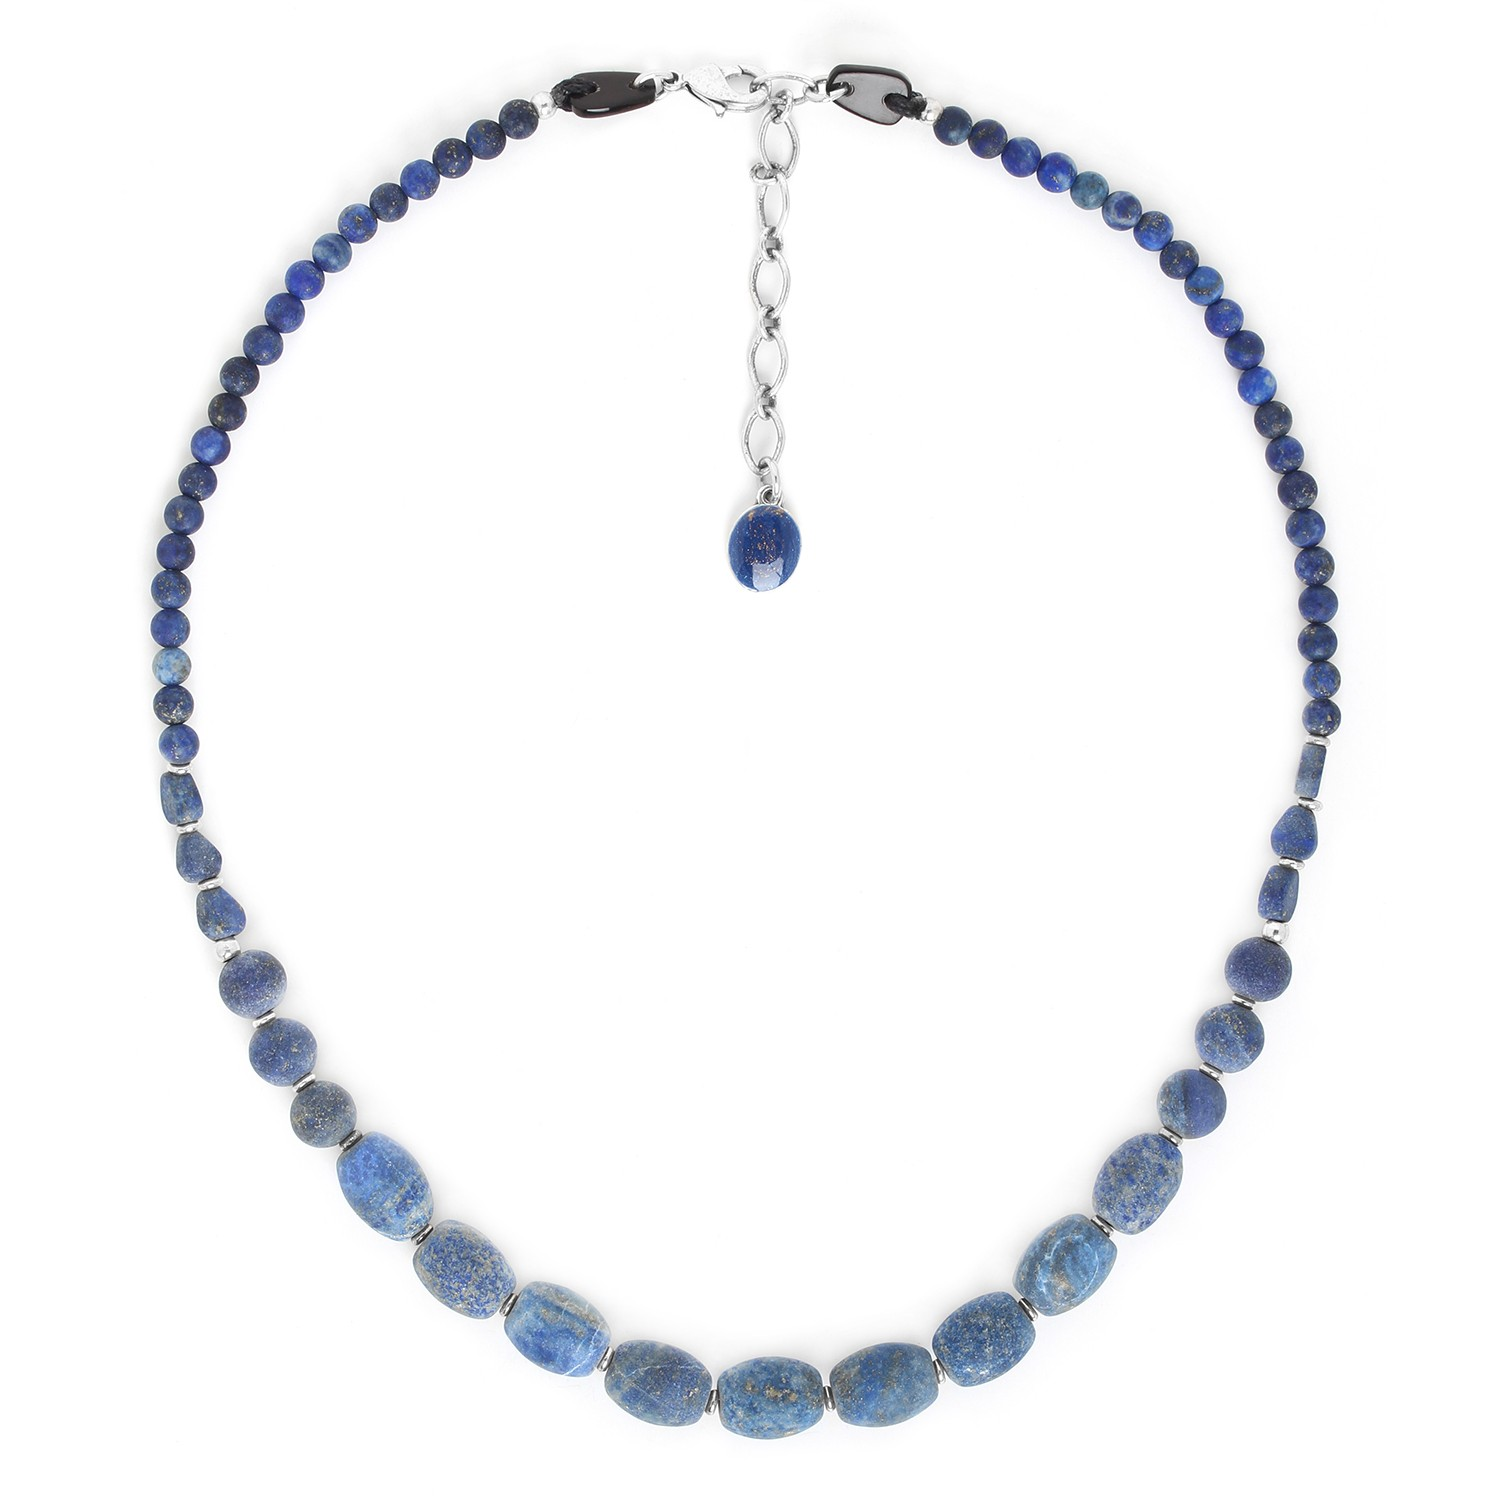 KABYLIE collier lapis lazuli